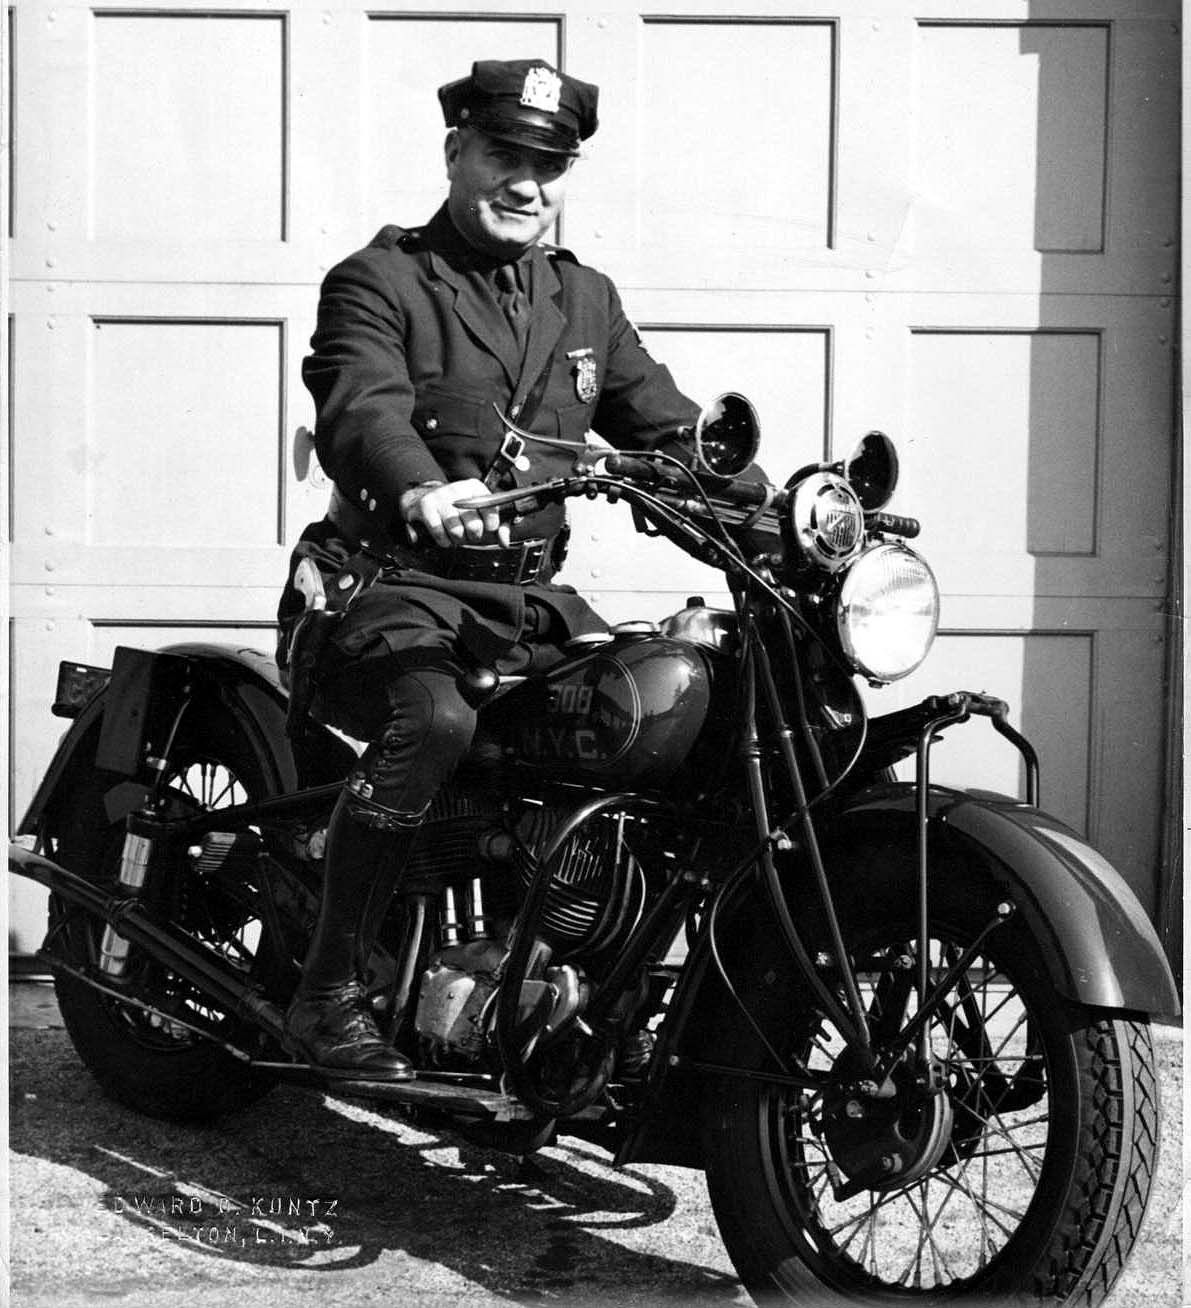 Department Of Motor Vehicles Huntington Ny: Vintage New York City Motorcycle Police Officer.